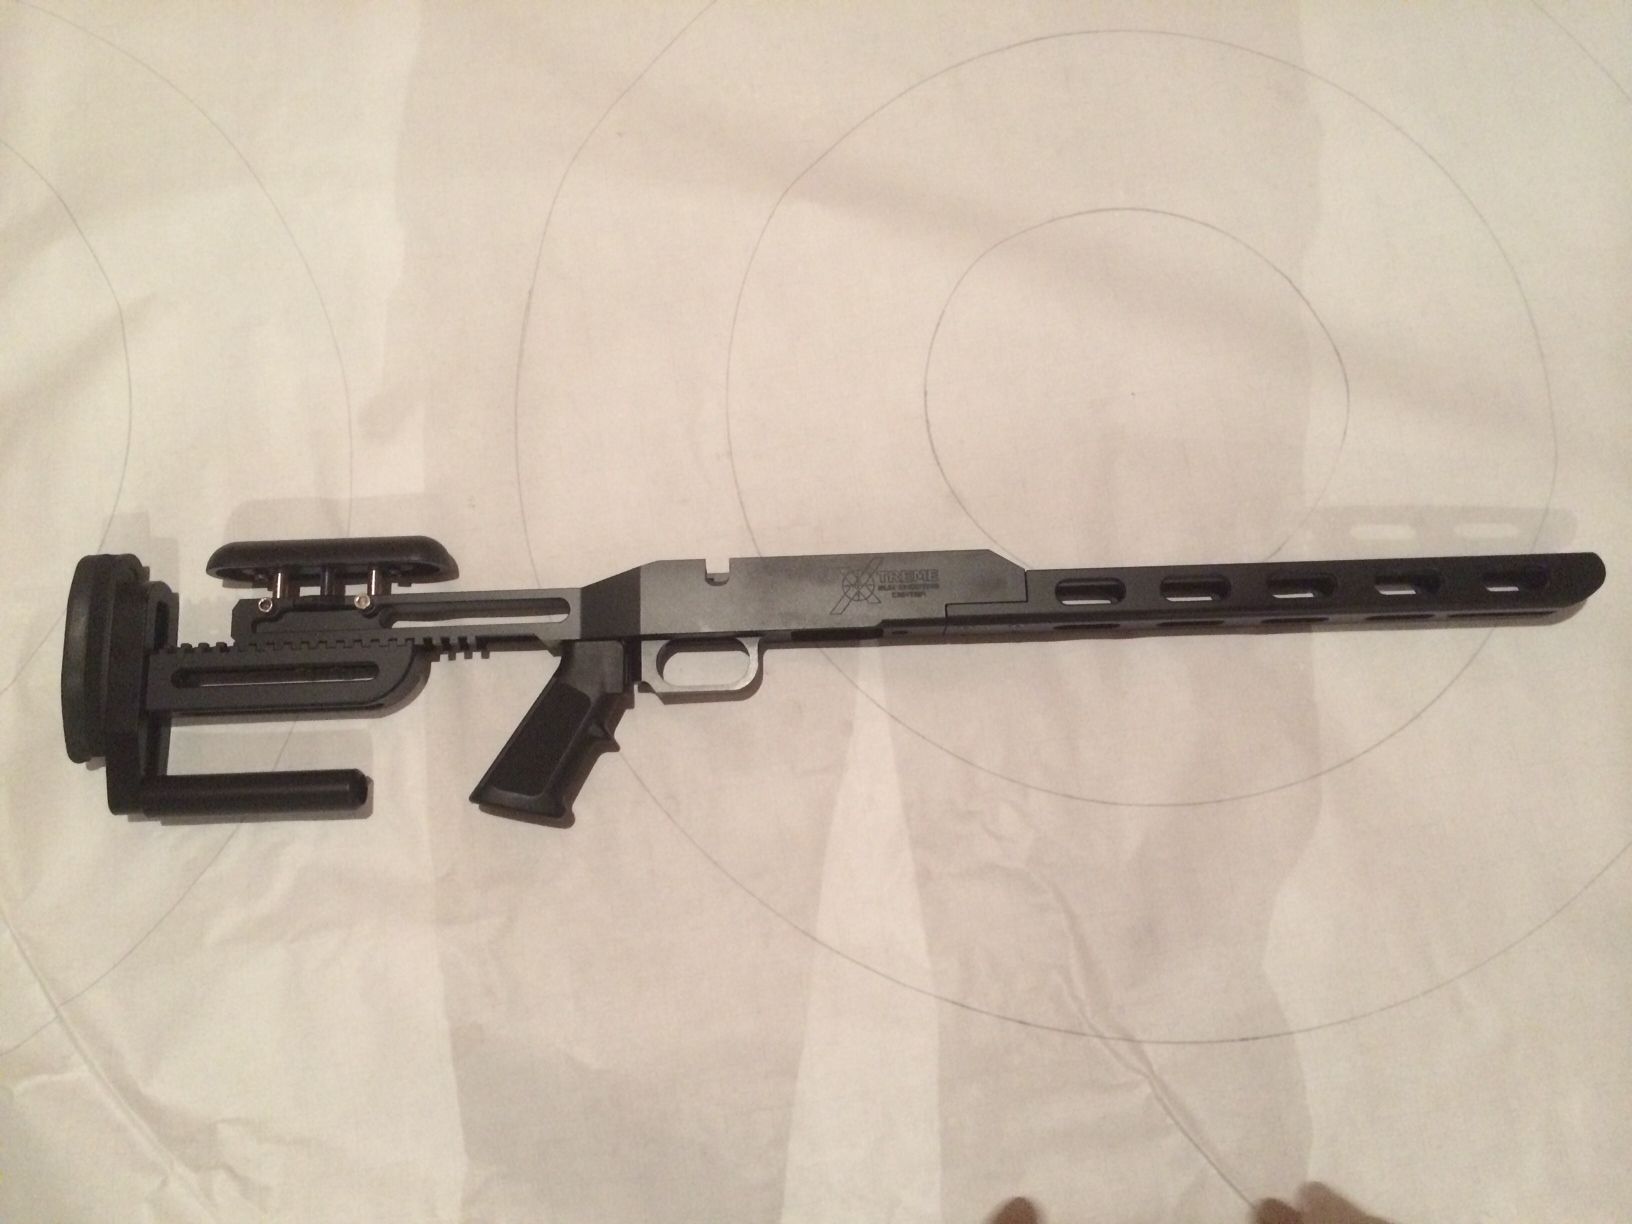 Xtreme Gun Remington 700 & Clones Chassis/Stock Repeater